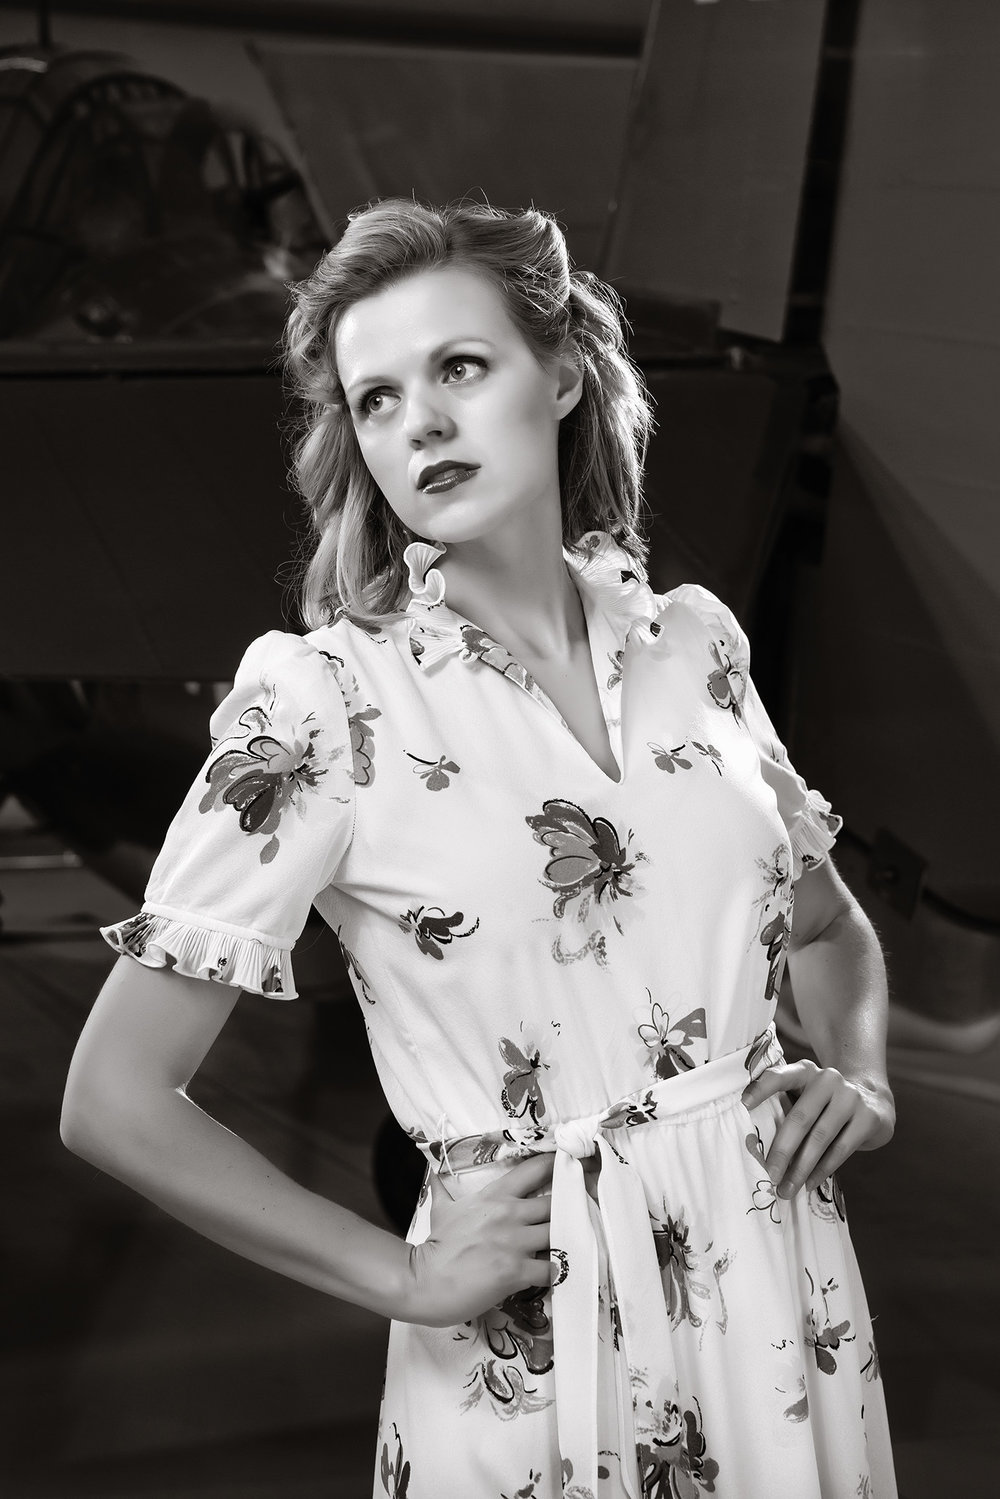 Model, Catherine Johnson poses with vintage 40's dress